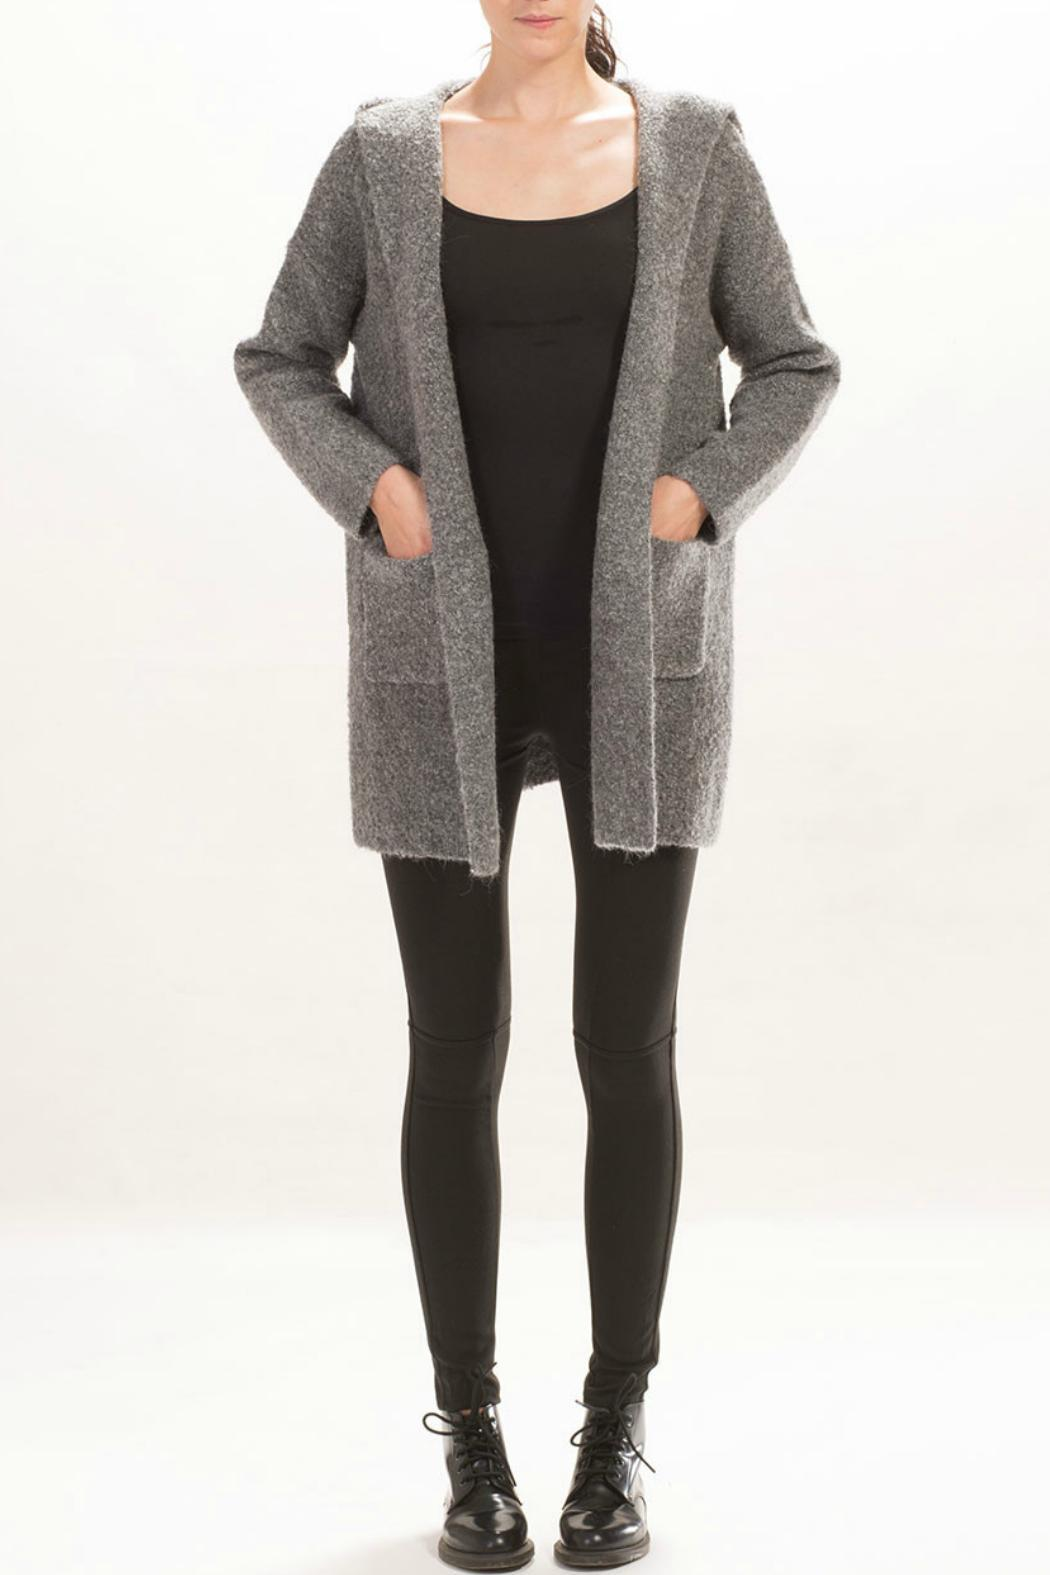 Look by M Hooded Knit Cardigan from New Jersey by Locust Whimsy ...